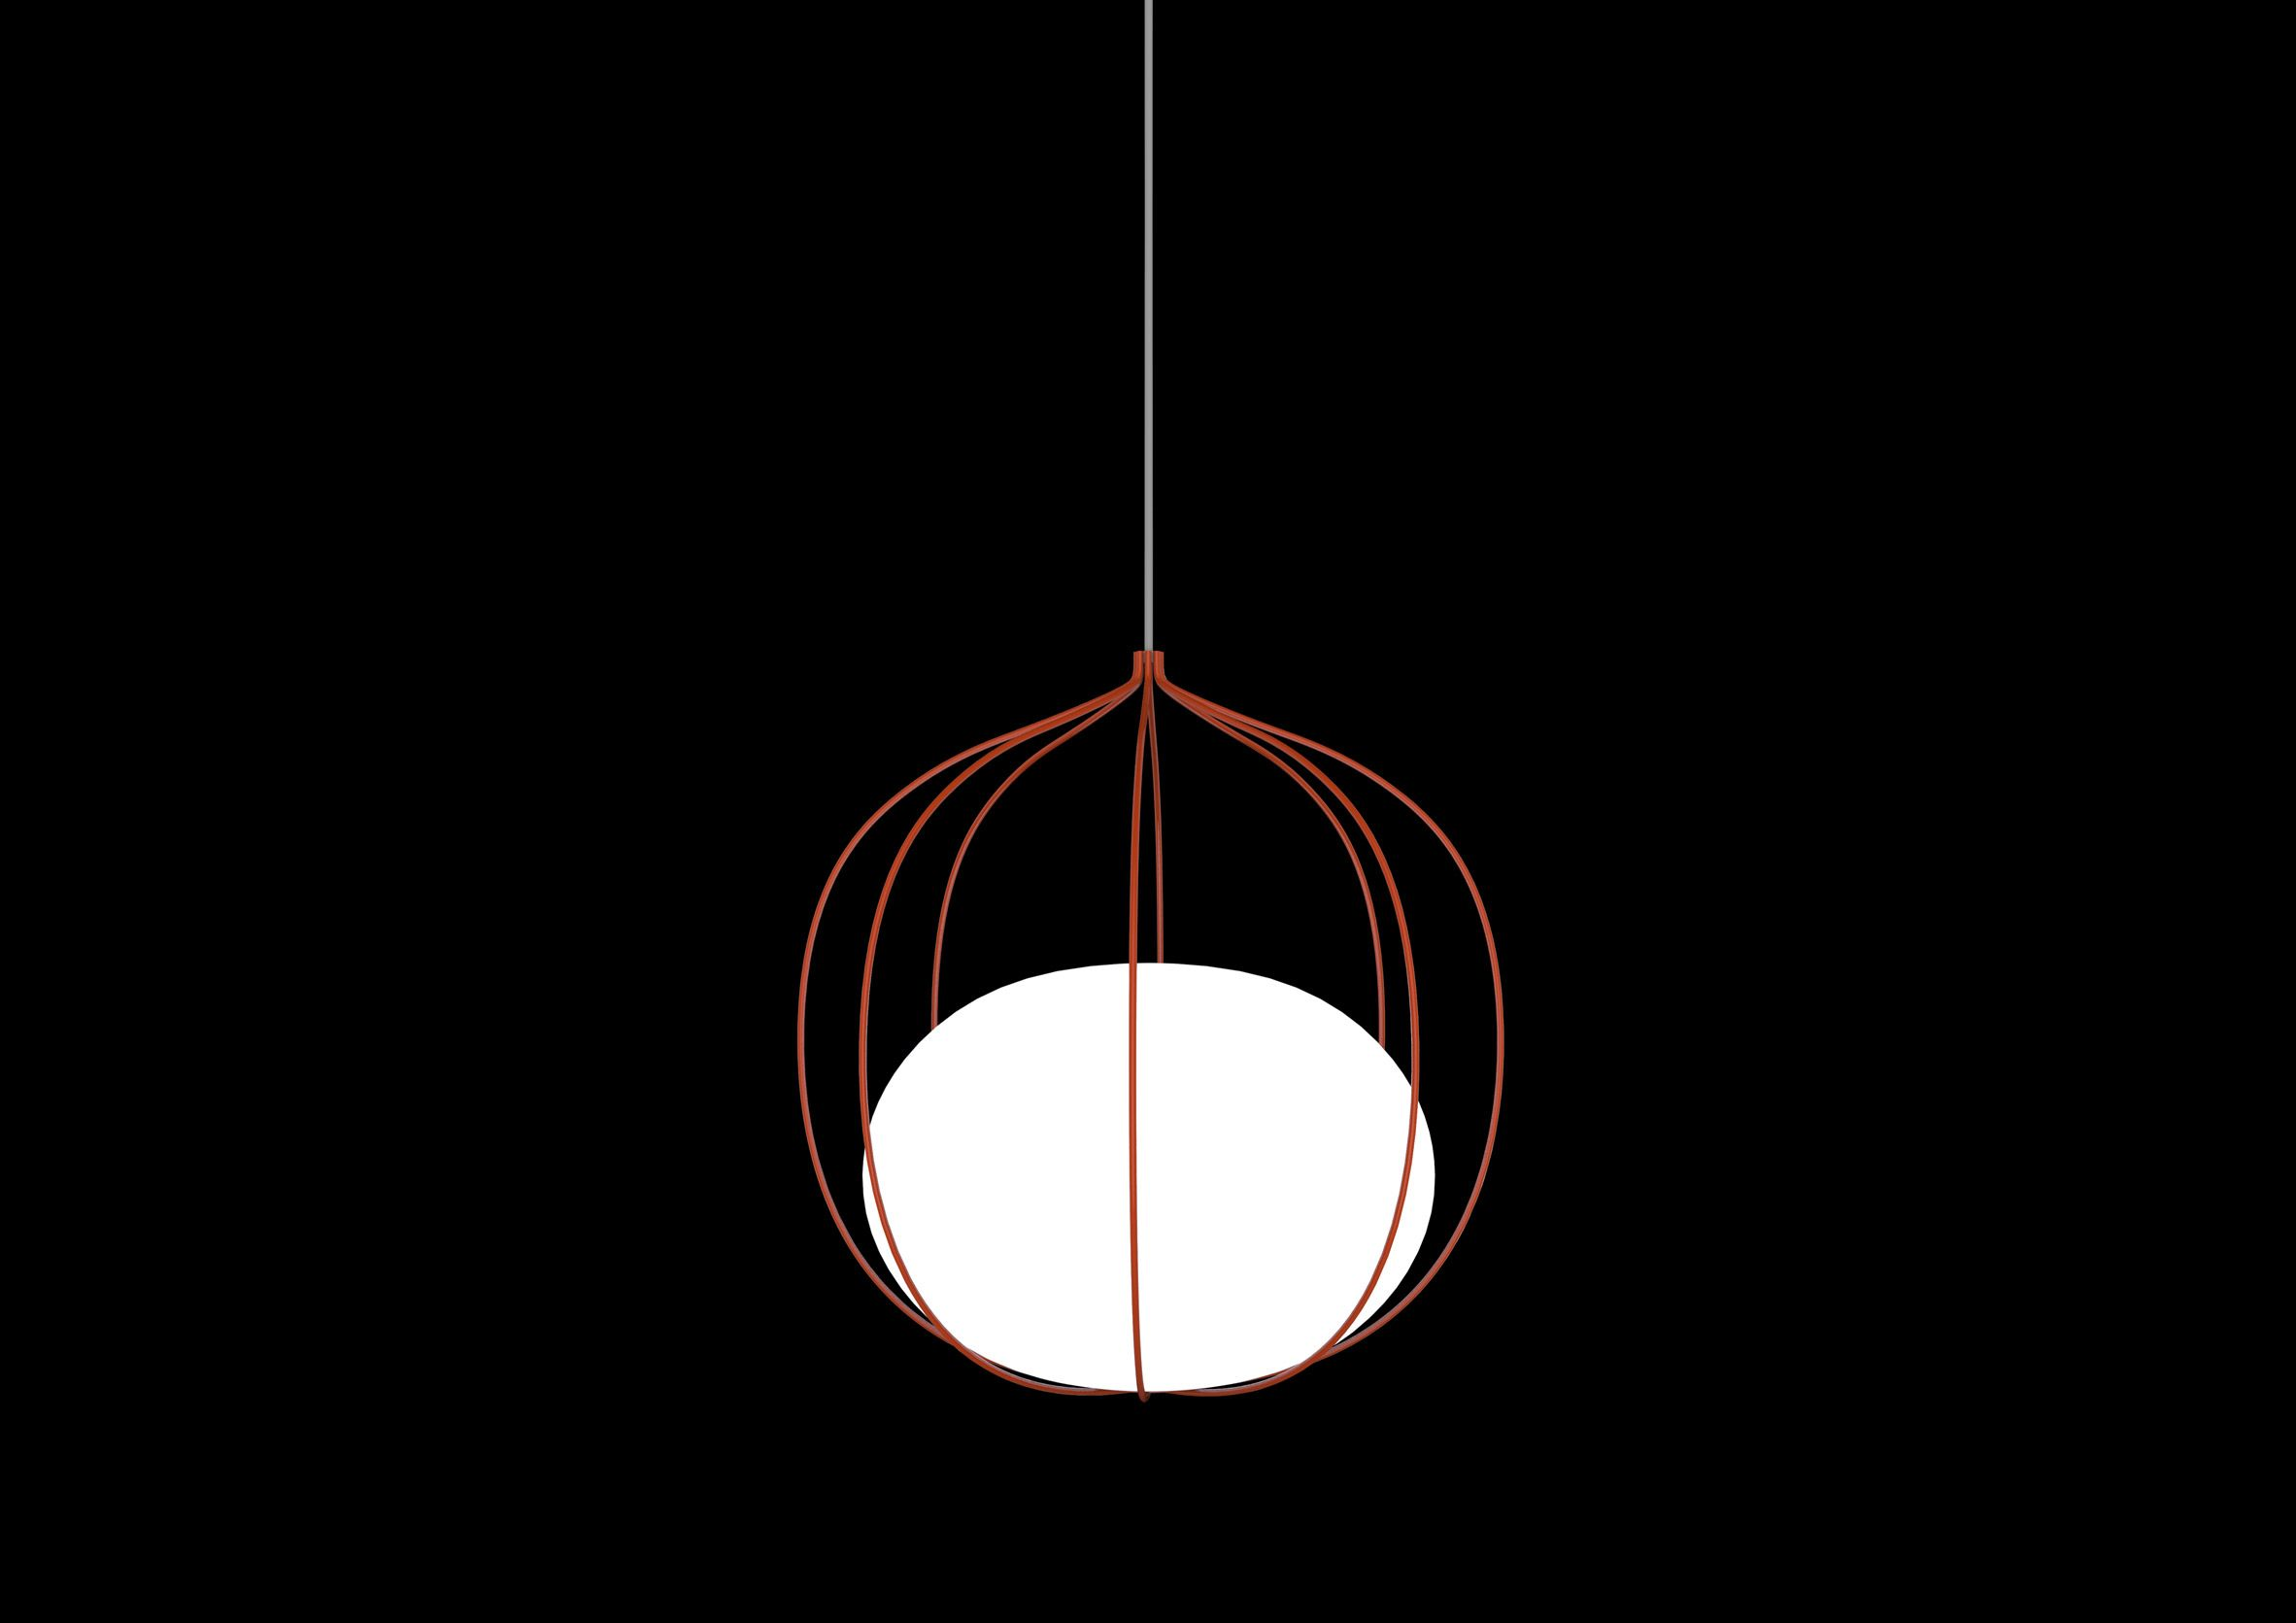 Stockholm studio front has created a series of lights for design